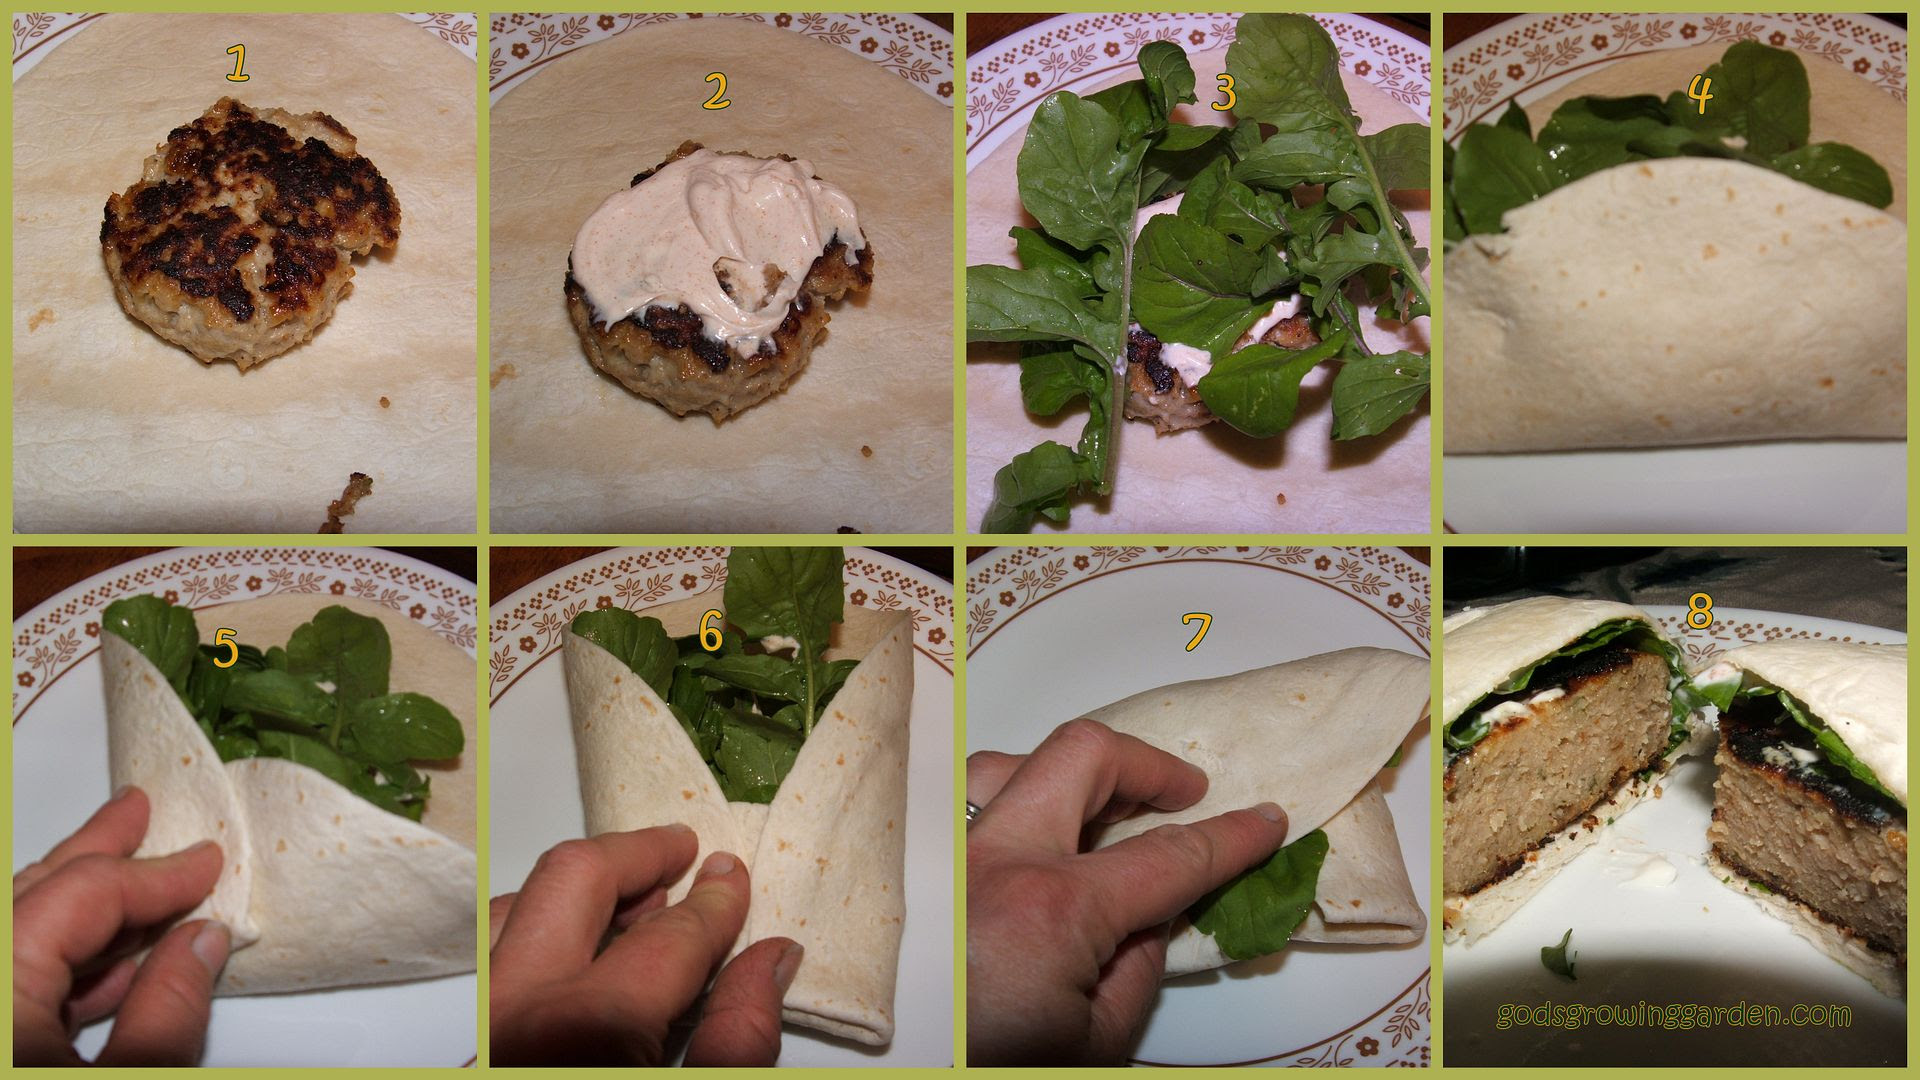 Chicken Burger by Angie Ouellette-Tower for godsgrowinggarden.com photo 2014-07-16_zps5252eef7.jpg